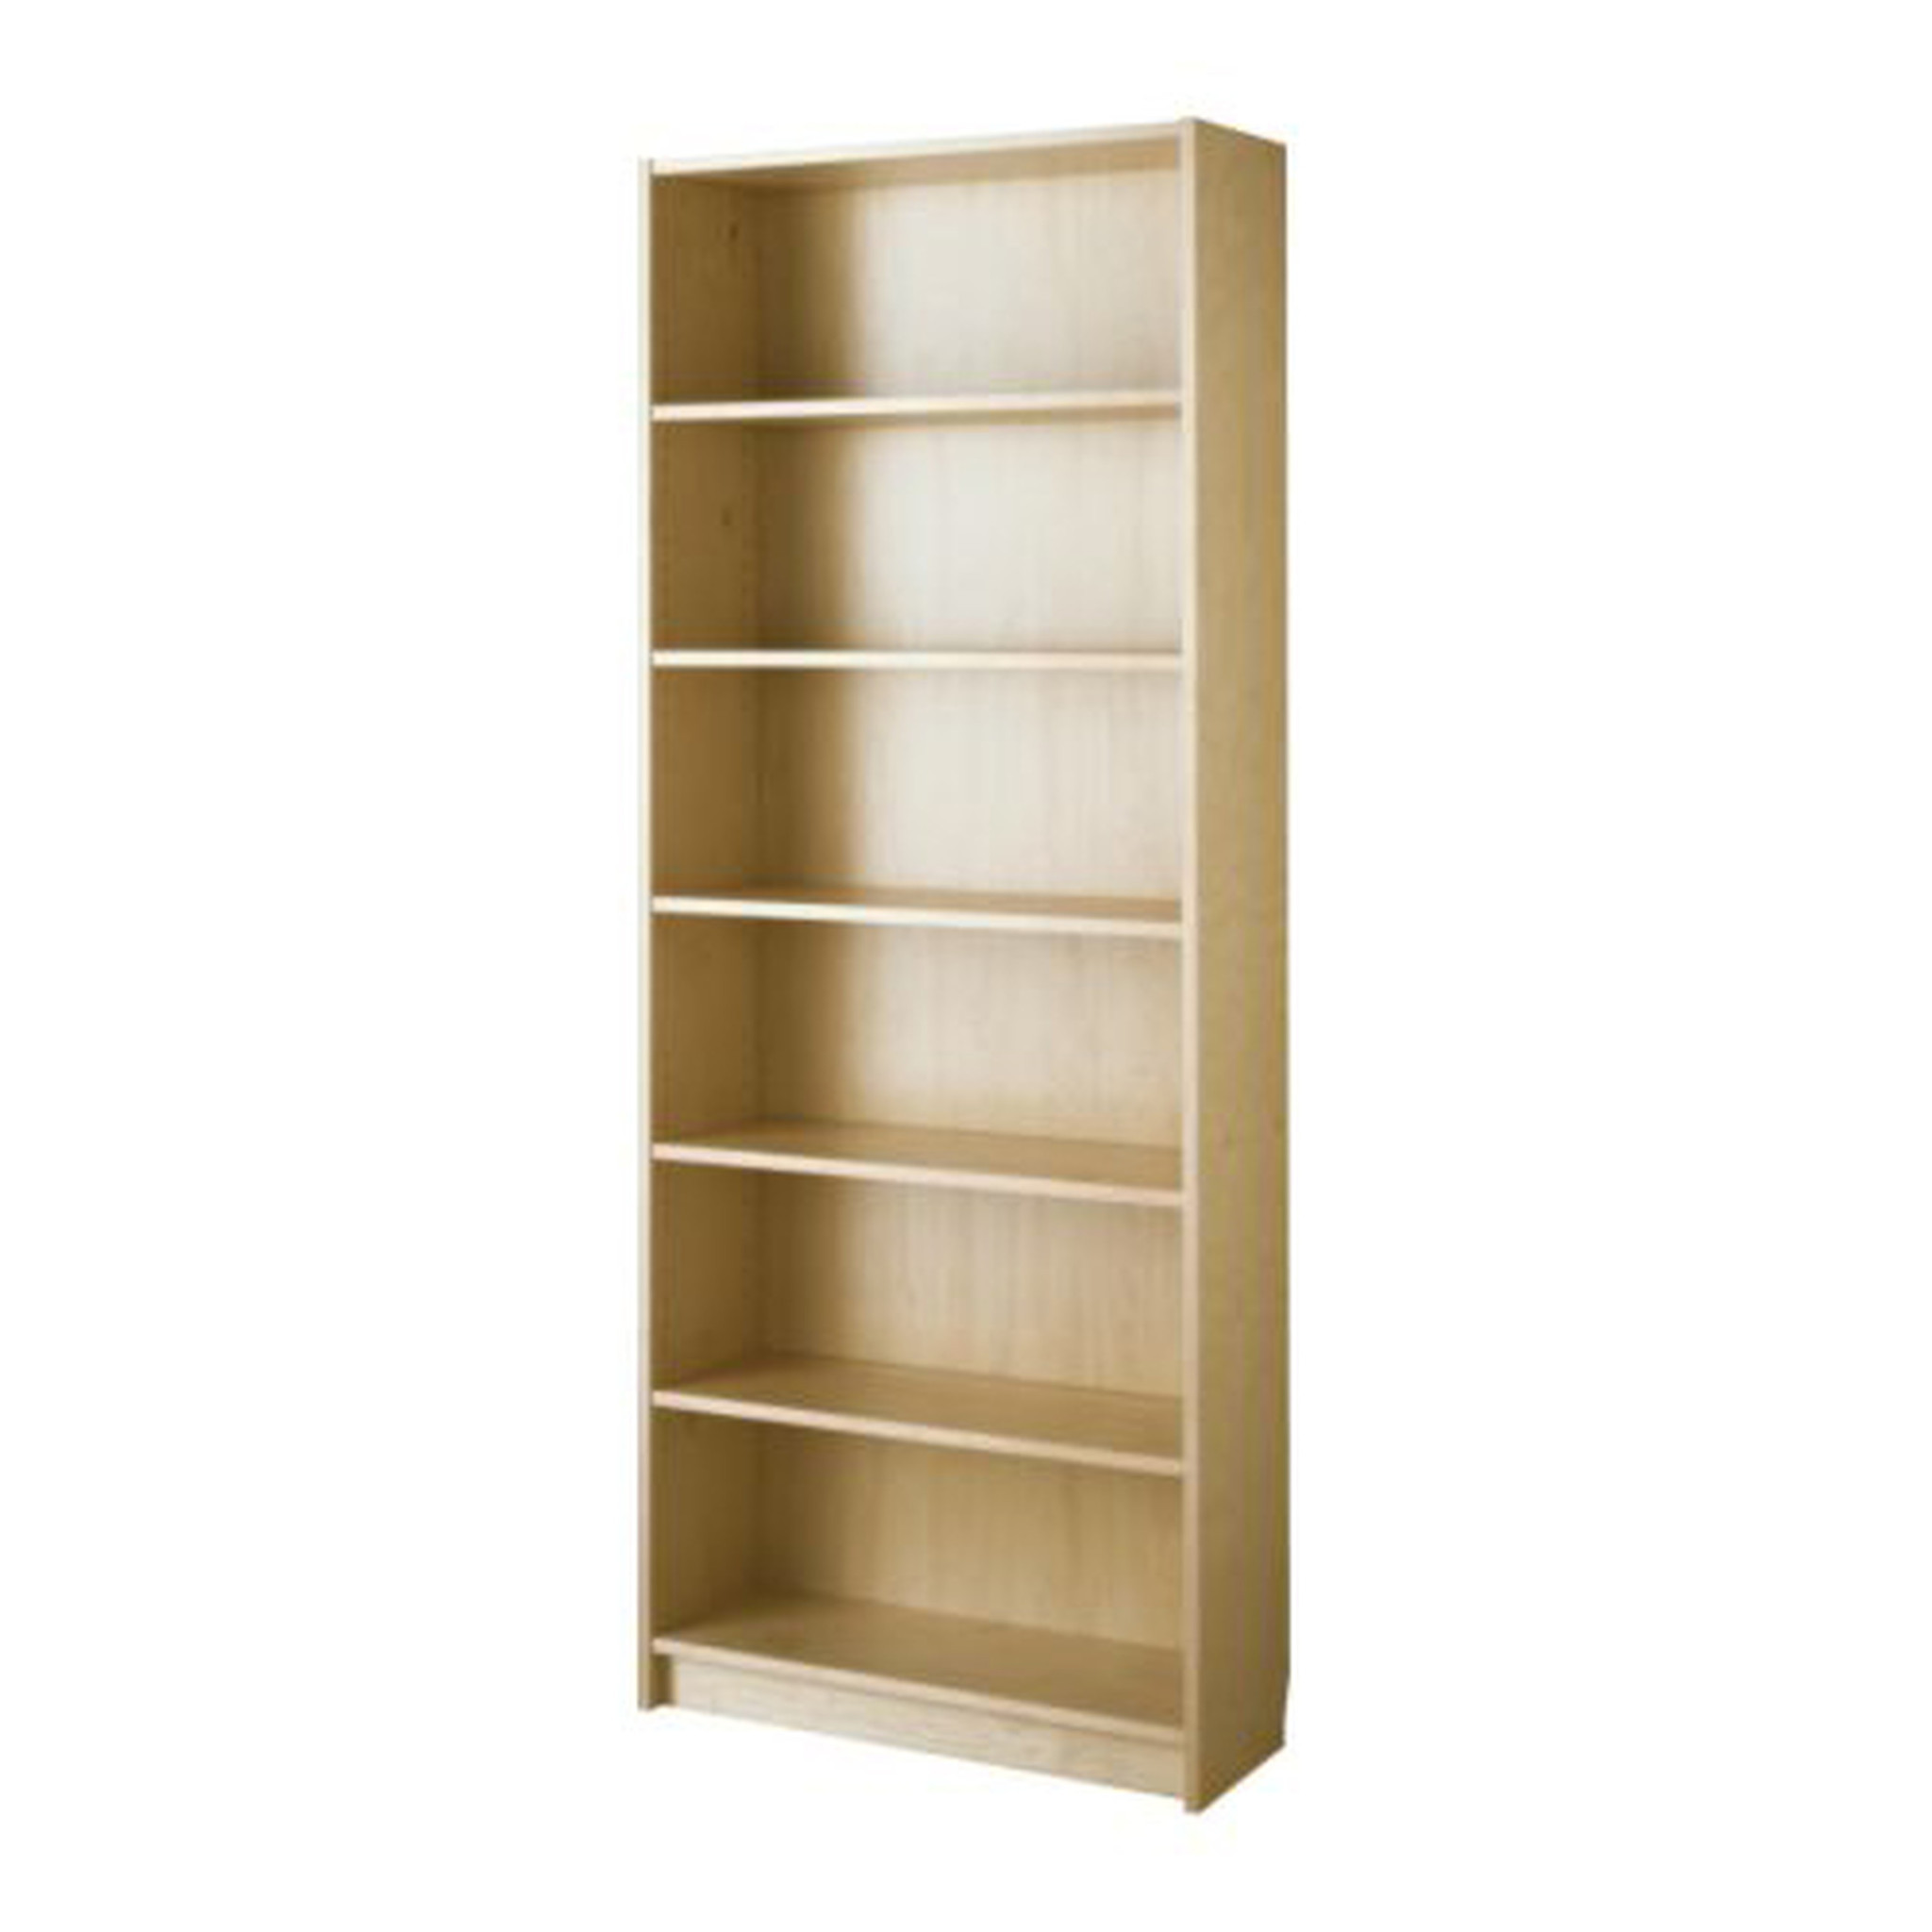 Where To Buy The Worlds Cheapest IKEA Billy Bookcase